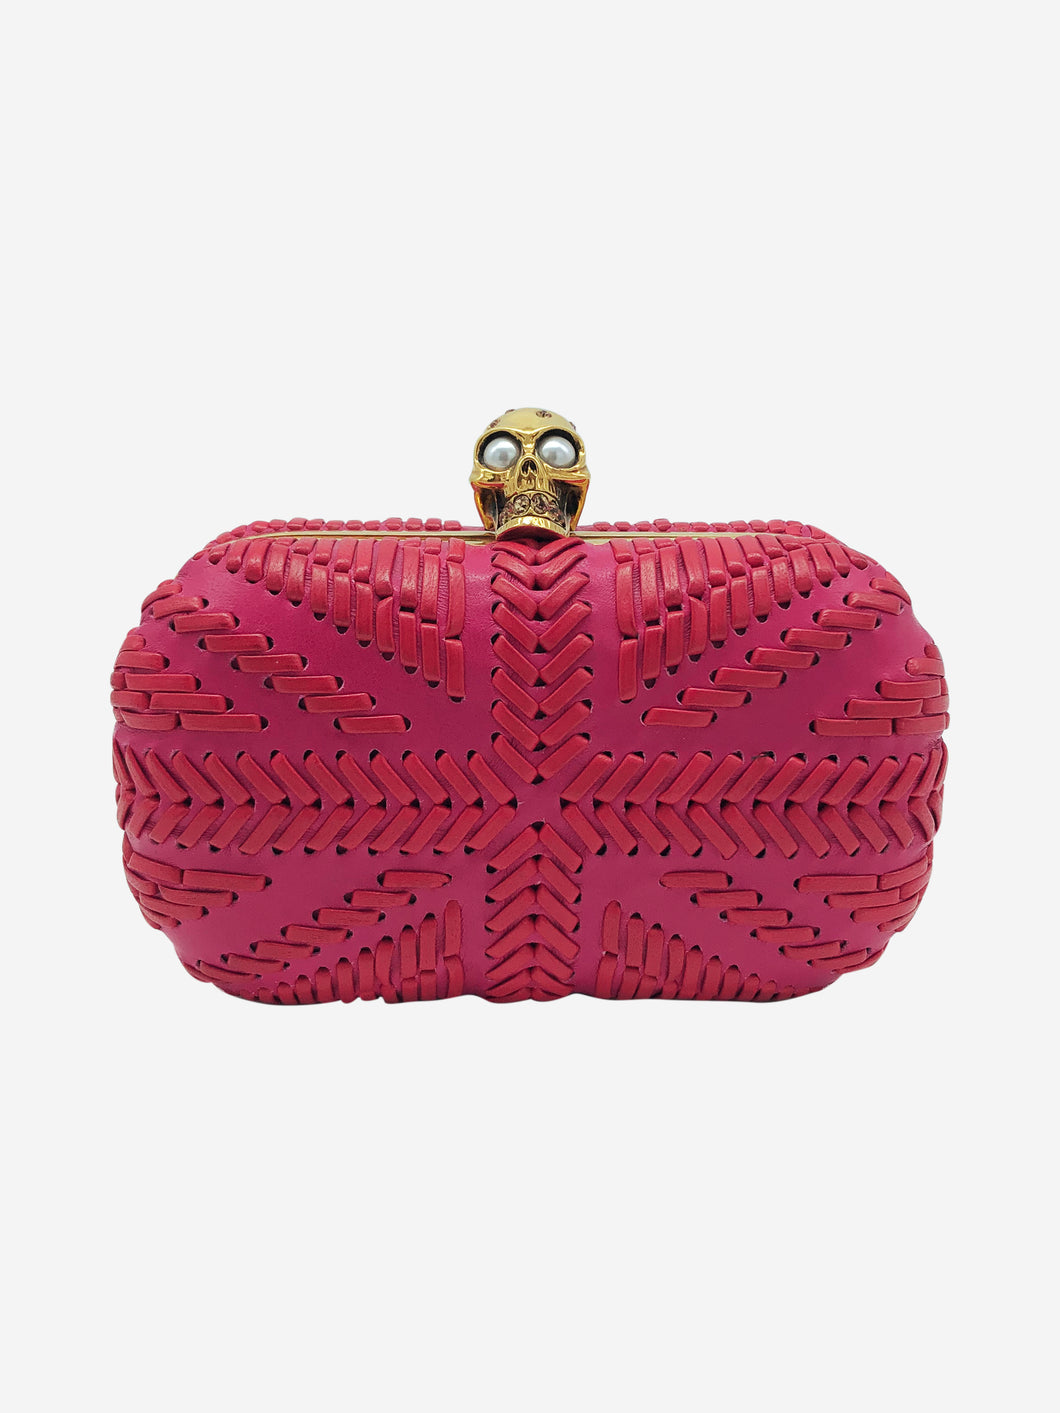 Pink skull woven leather box clutch